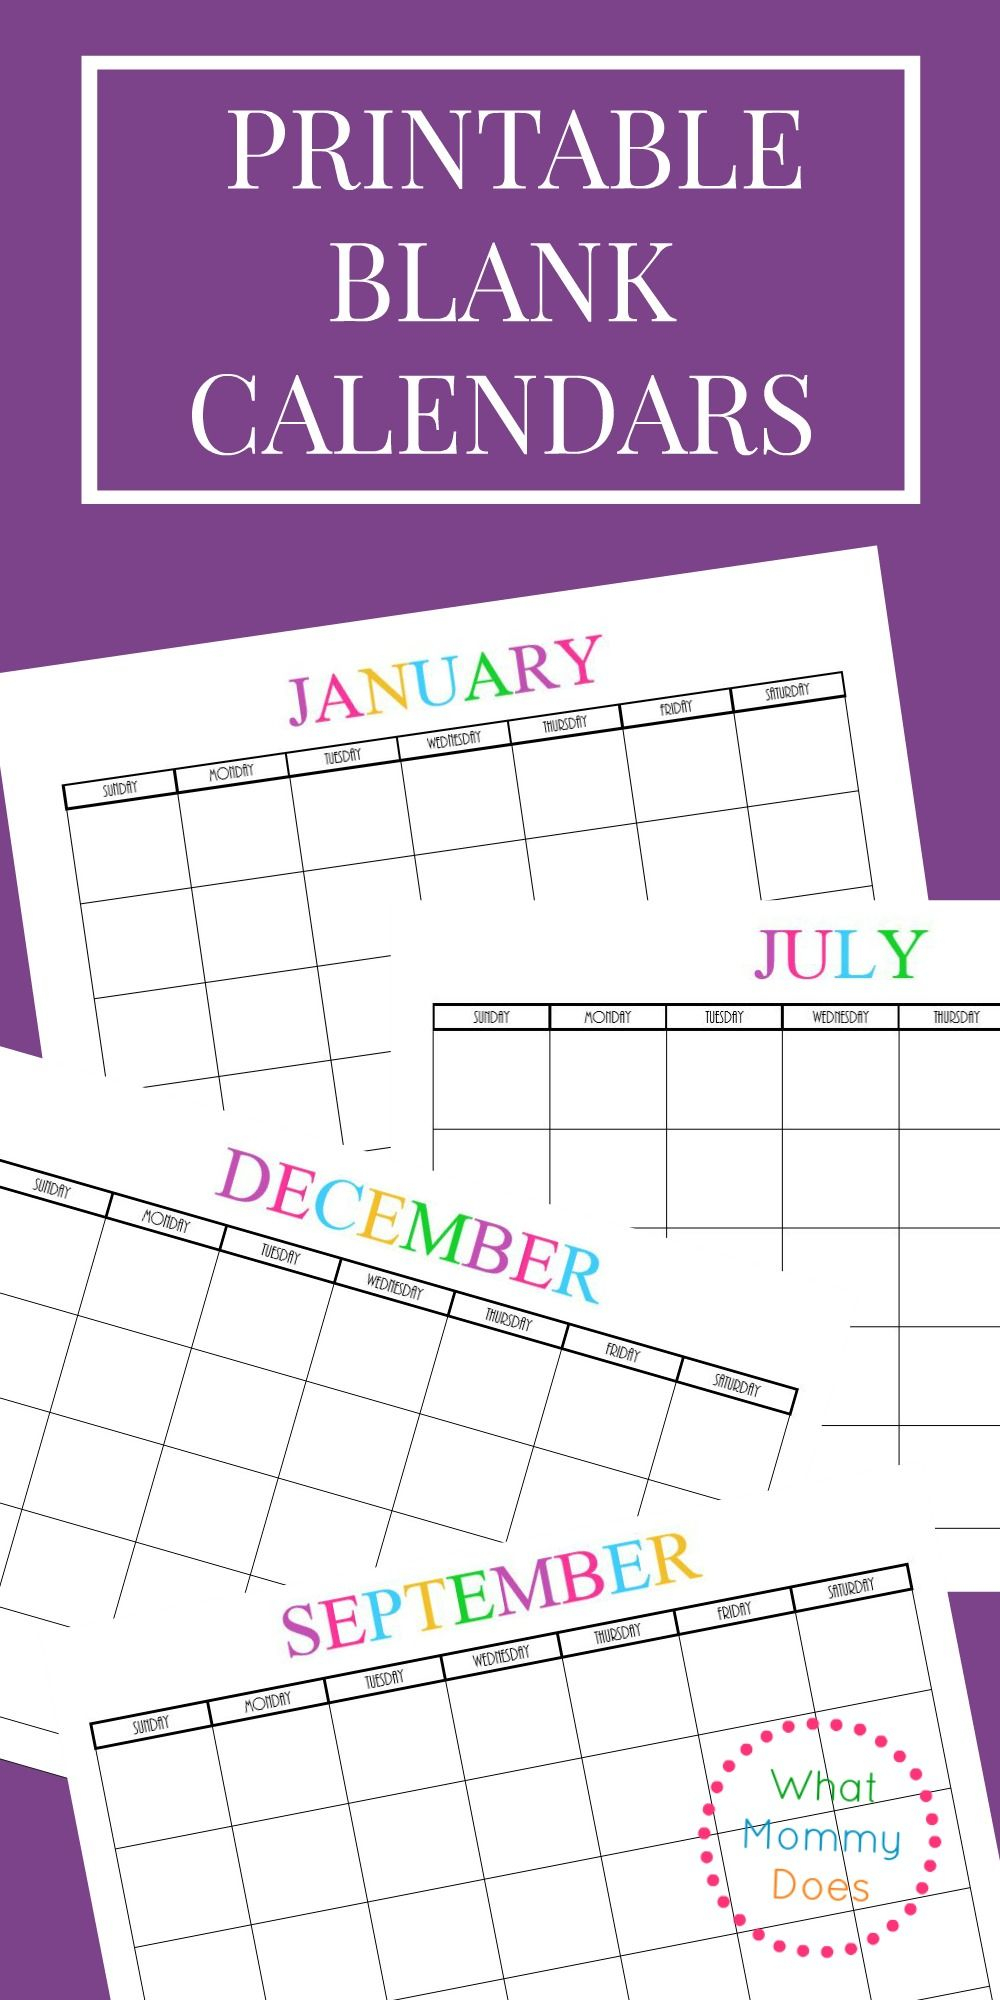 Free Printable Blank Monthly Calendars – 2018, 2019, 2020